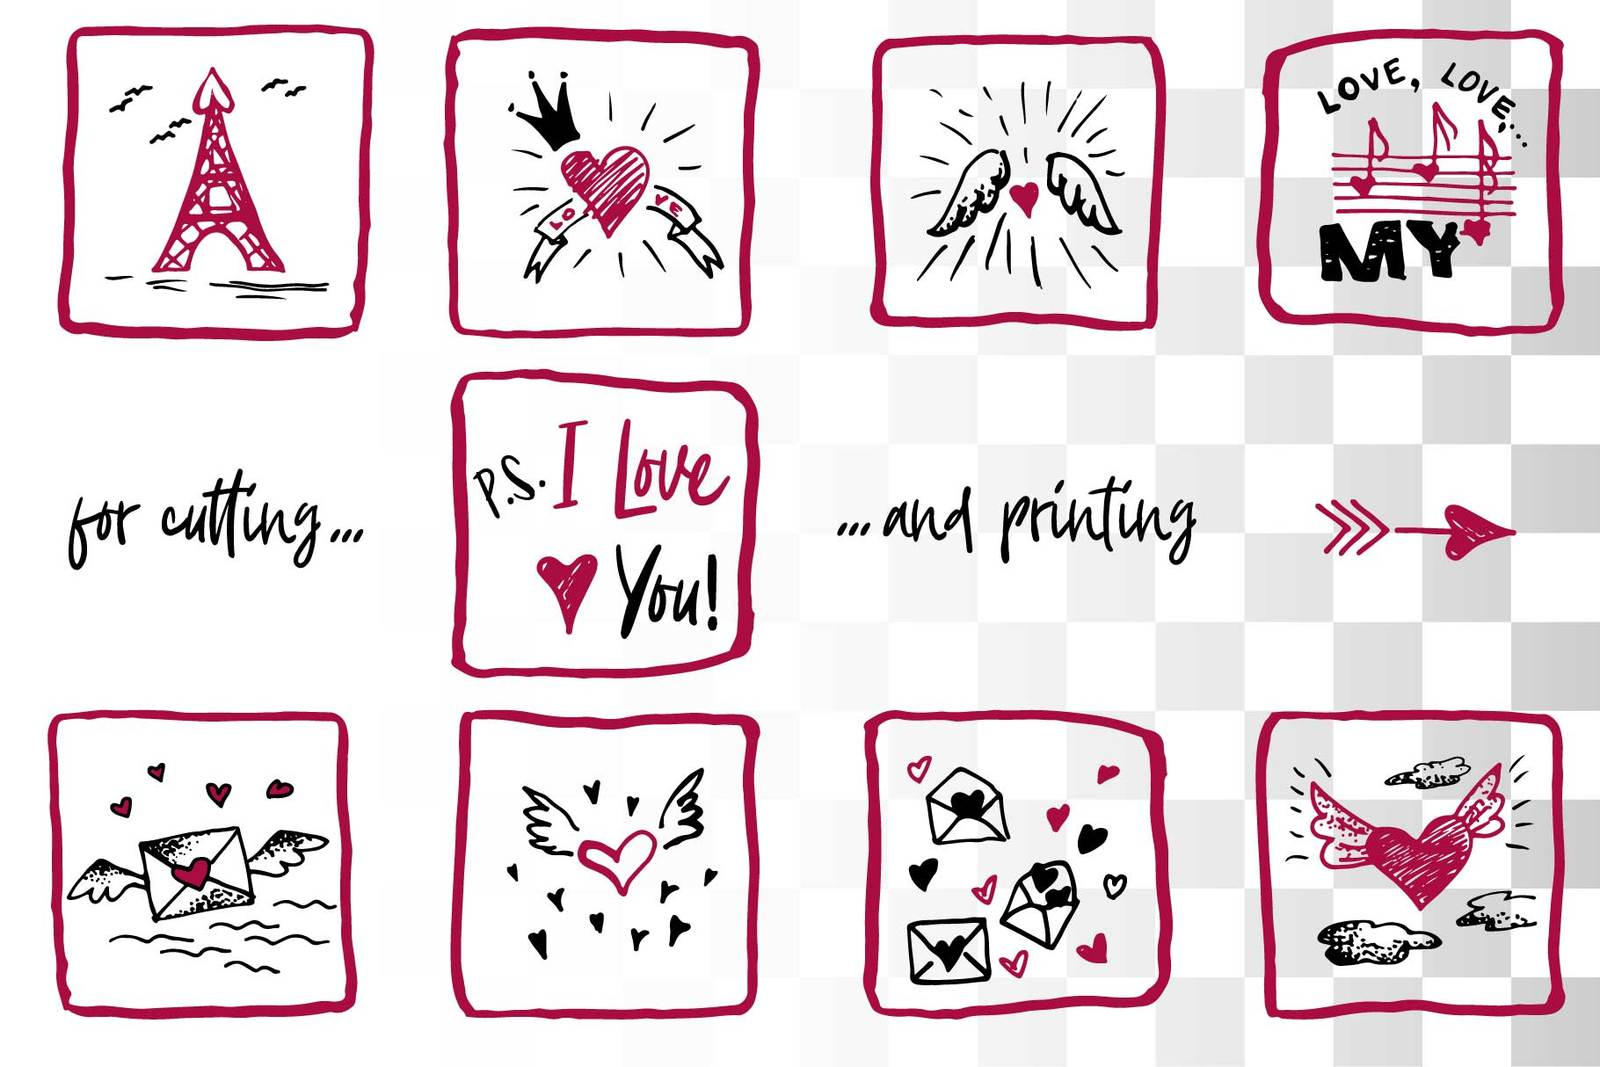 Lovely valentines day set - #5 SVG collection